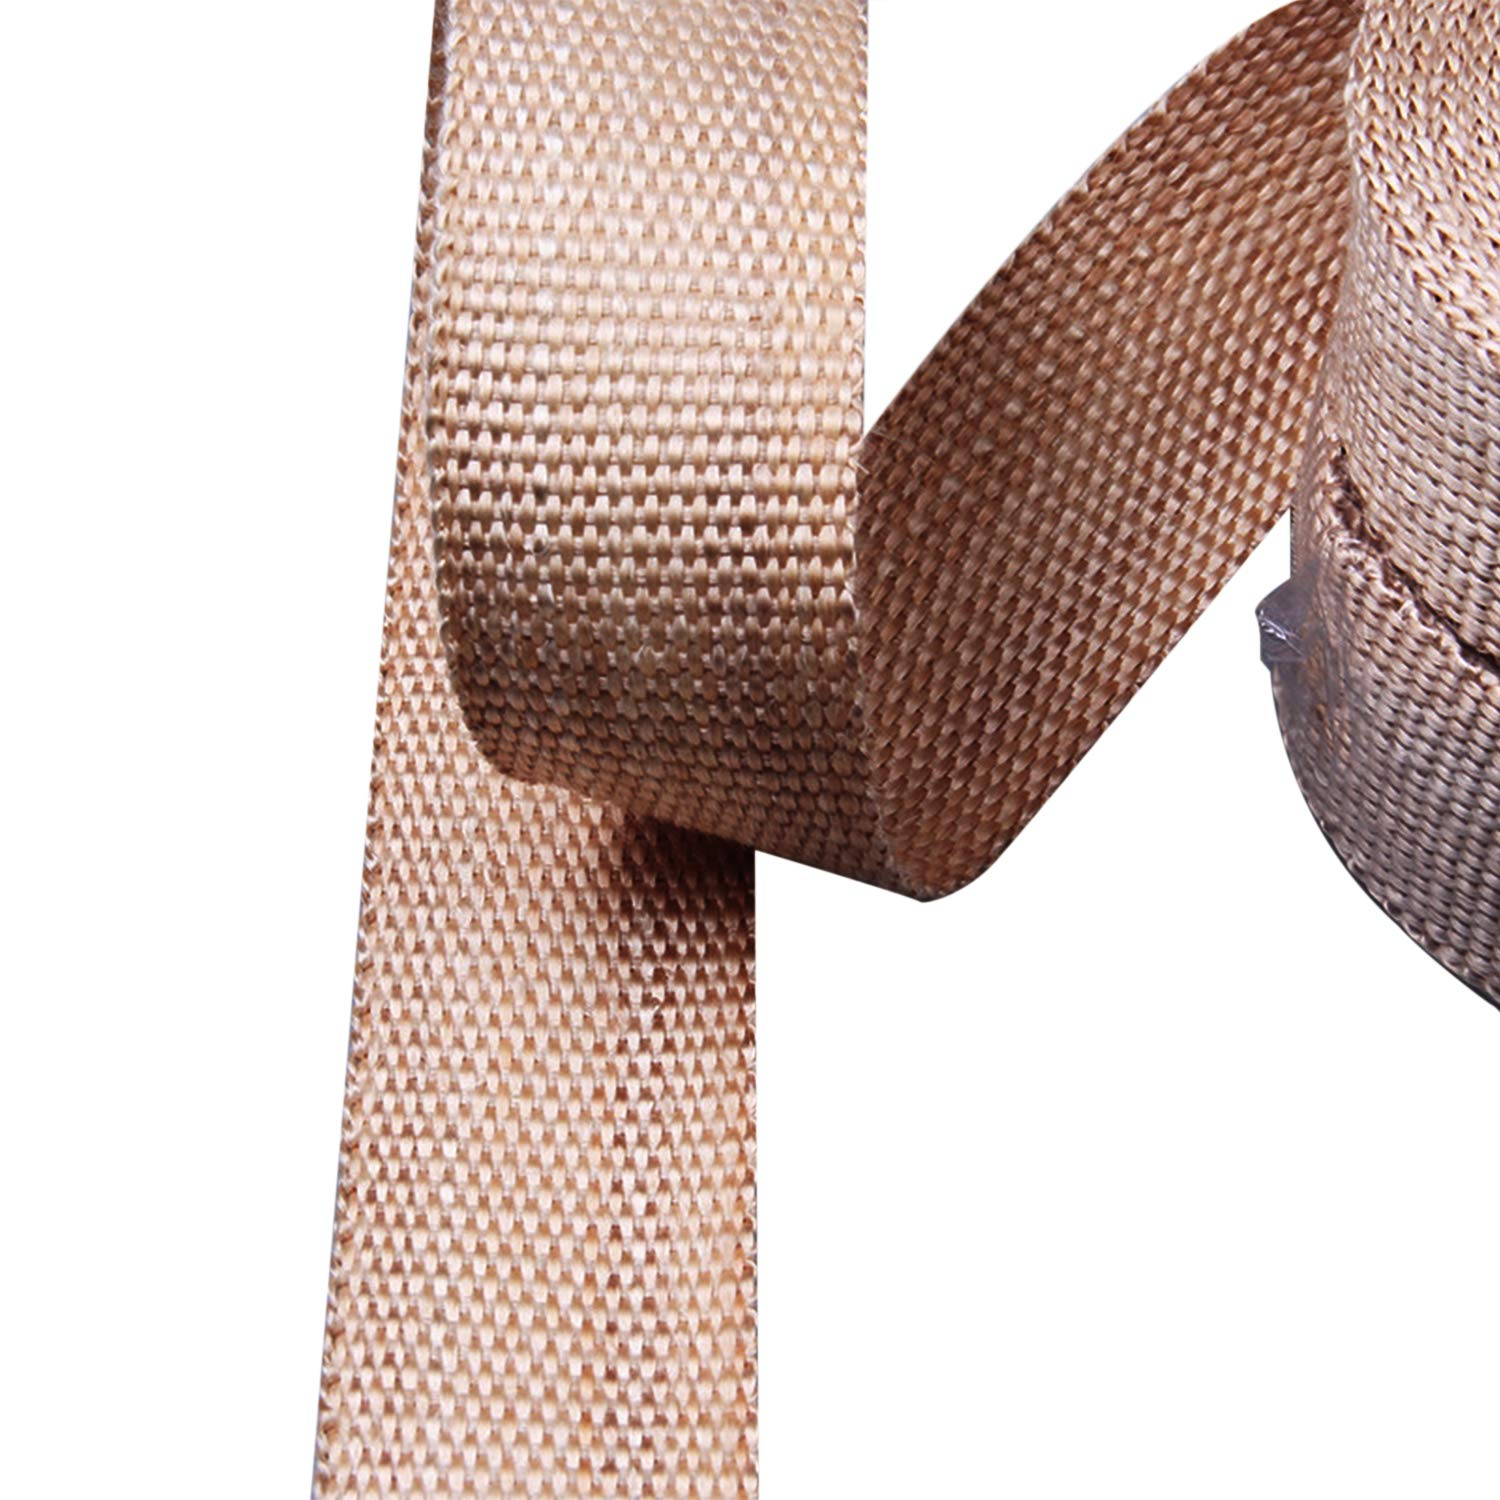 2 x 33 Golden NRC/&XRC Titanium Lava Fiber,Exhaust Heat Wrap,Exhaust Header Wrap,Kit for Motorcycle,Auto,BOAT/&ATVwith 6 PCS 11.8Stainless Ties